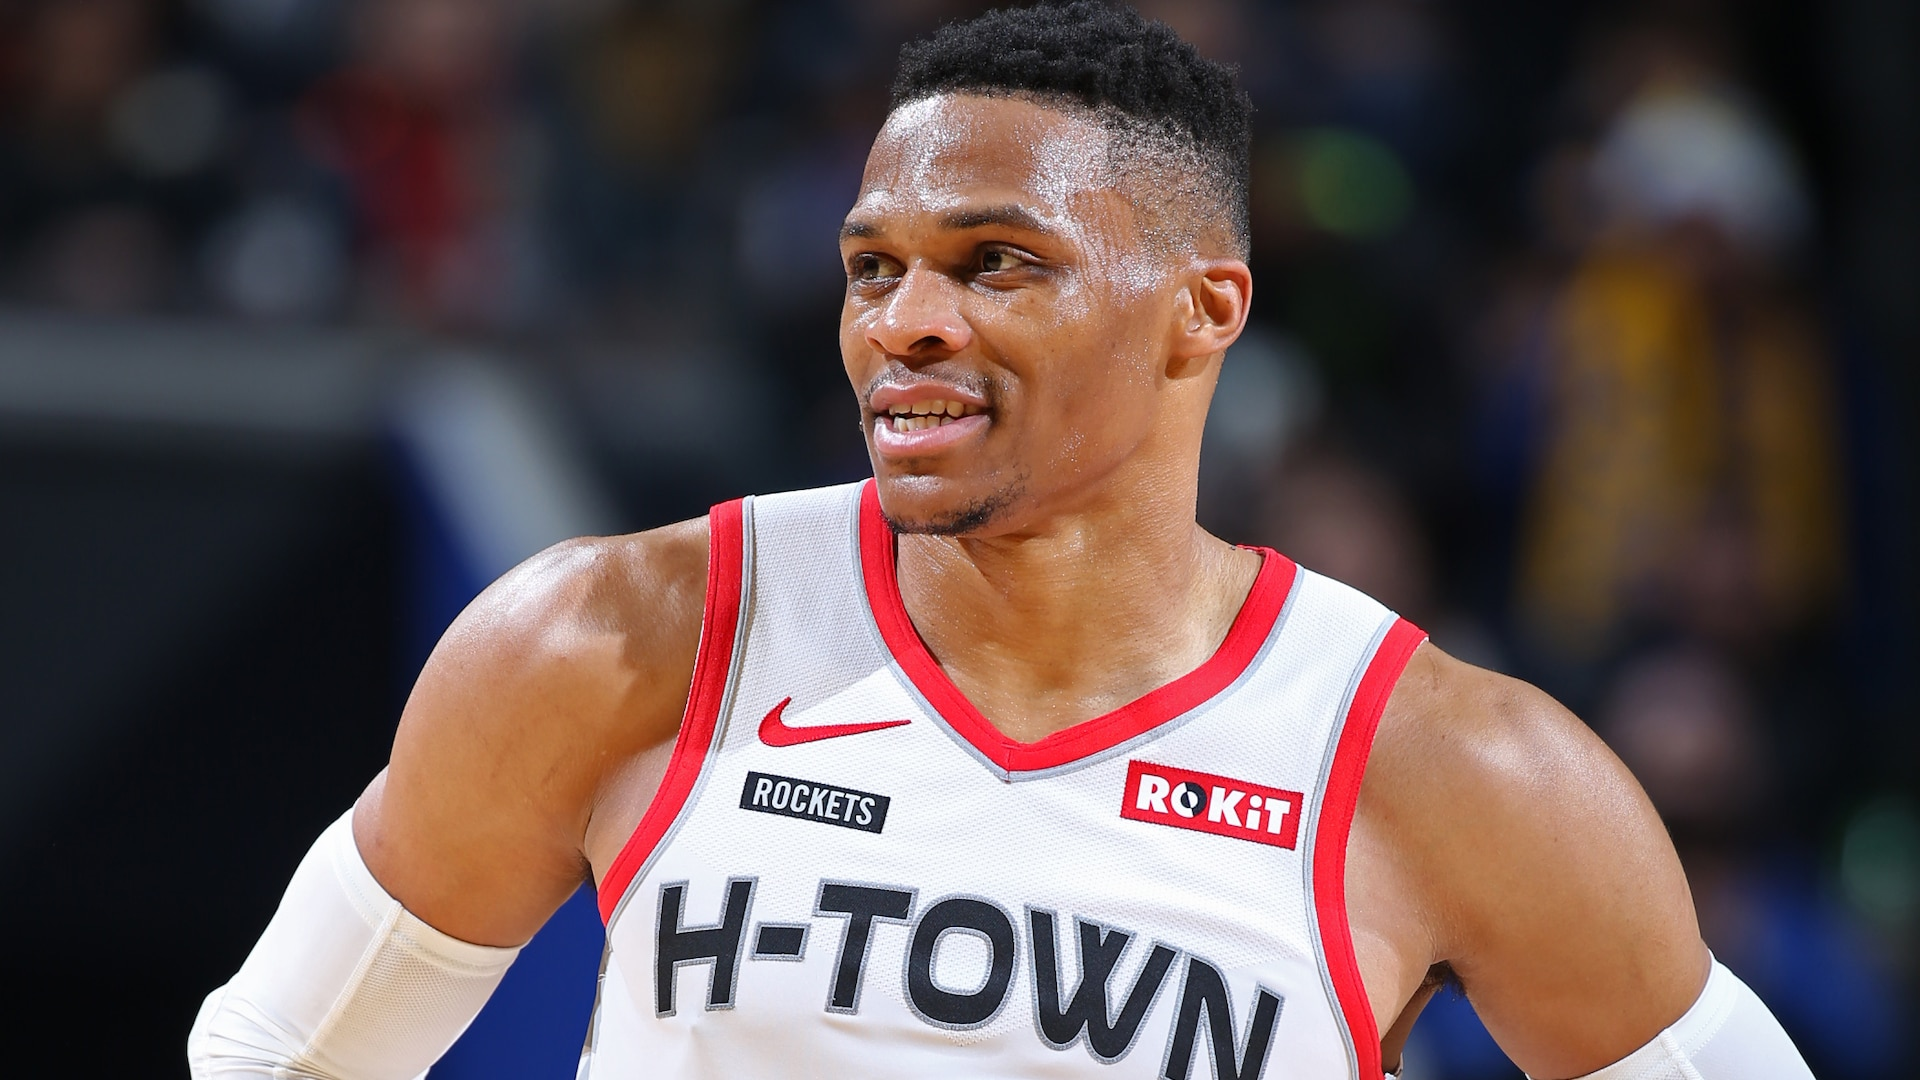 Russell Westbrook to sit out vs. Hawks, will play vs. Thunder